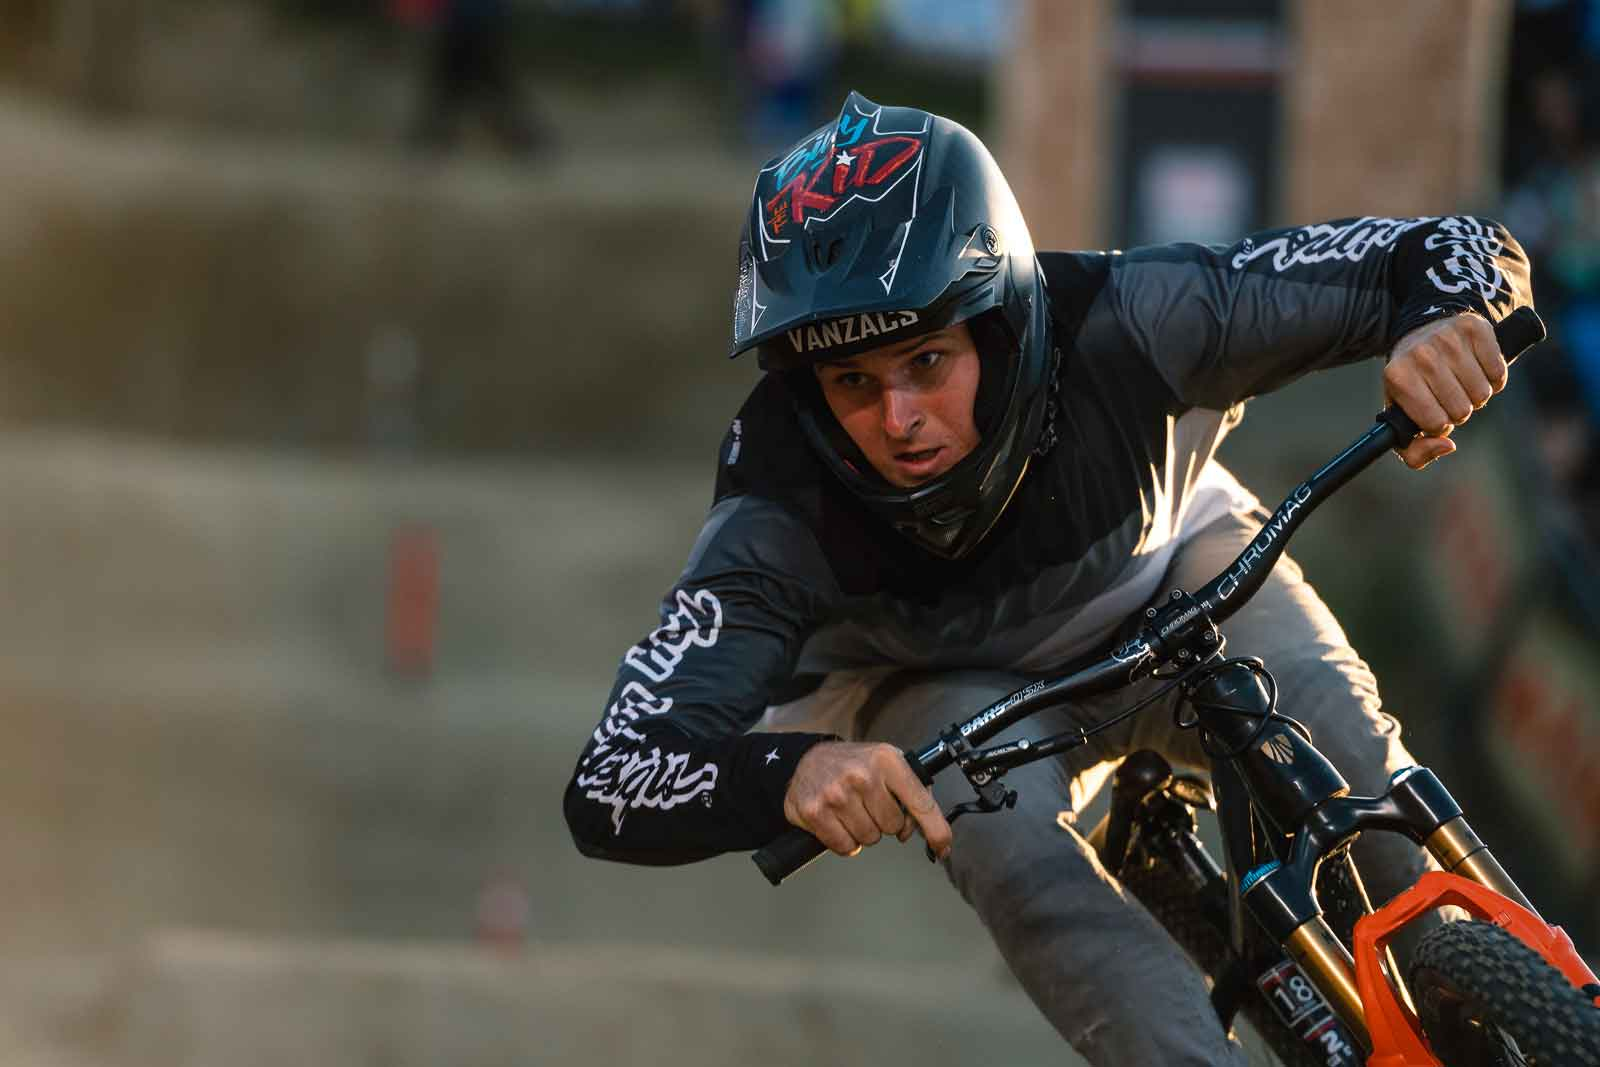 Billy Macleam rides the pump track at Crankworx Innsbruck